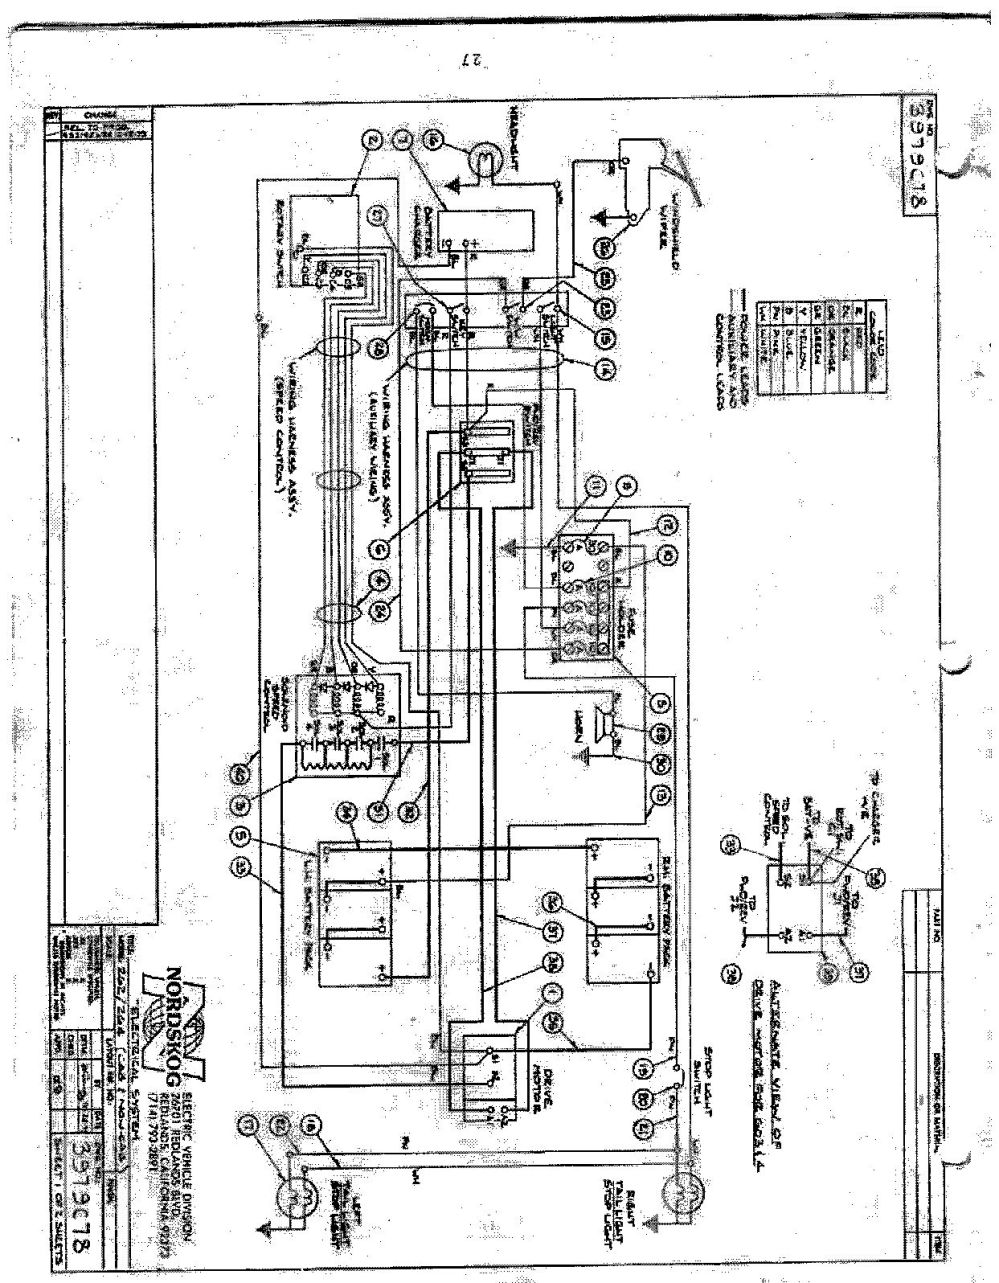 medium resolution of westinghouse golf cart wiring diagram 37 wiring diagram westinghouse golf cart restoration marketeer golf cart wiring